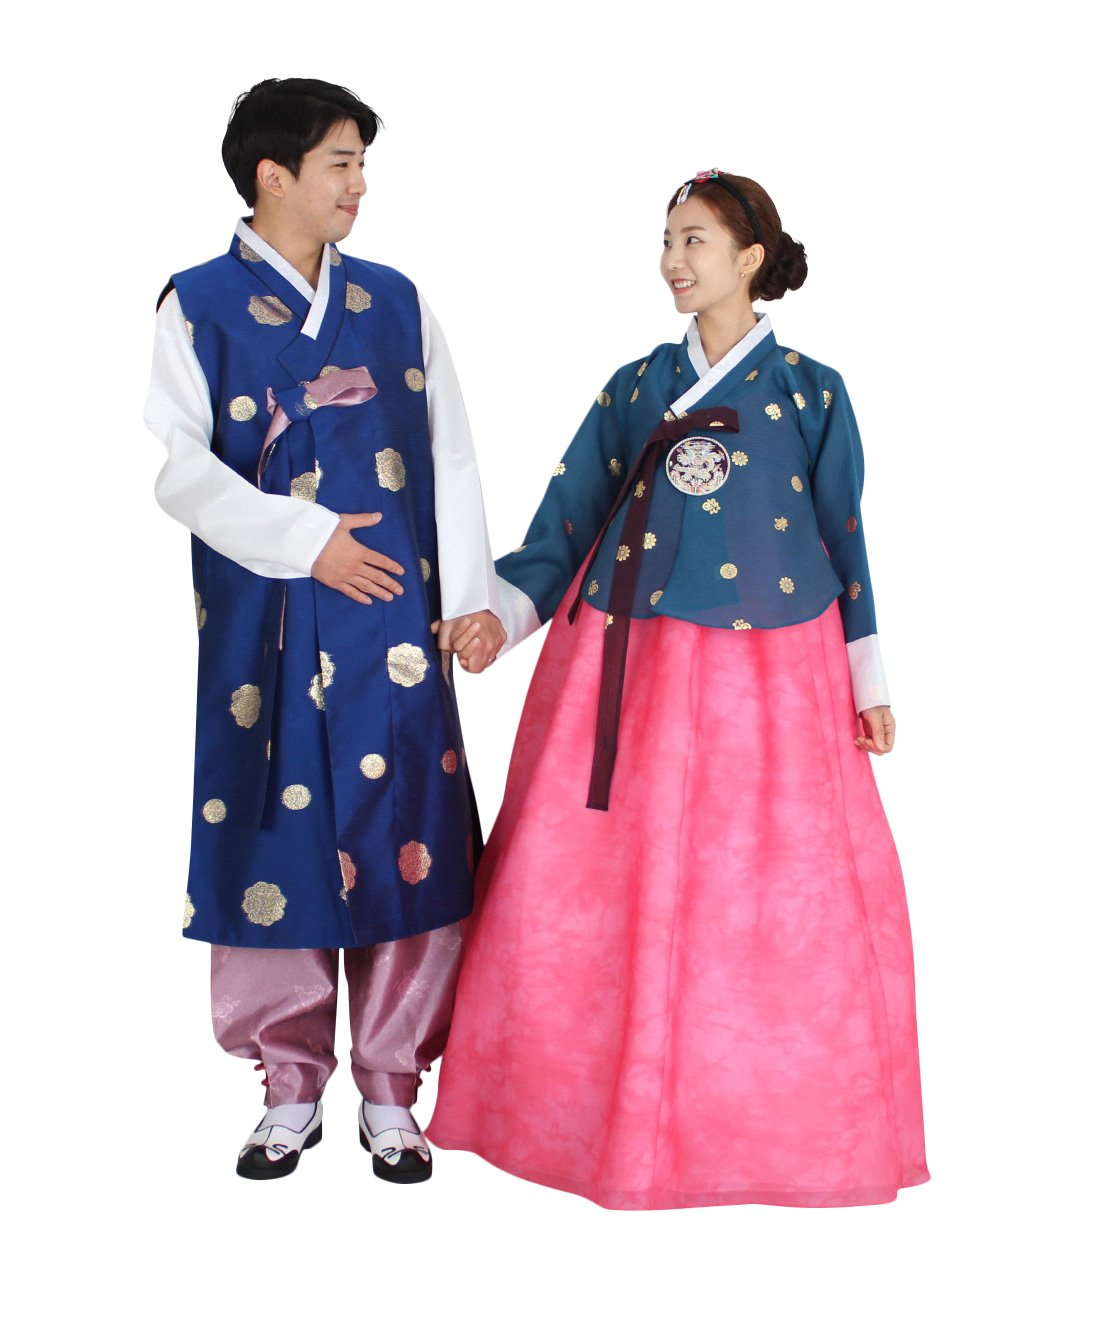 Hanbok Korea Traditional Costumes Women Men Couple Weddings Birthday Speical Ceremony co104 (pants length 115cm (waist 32 inches)) by Hanbok store